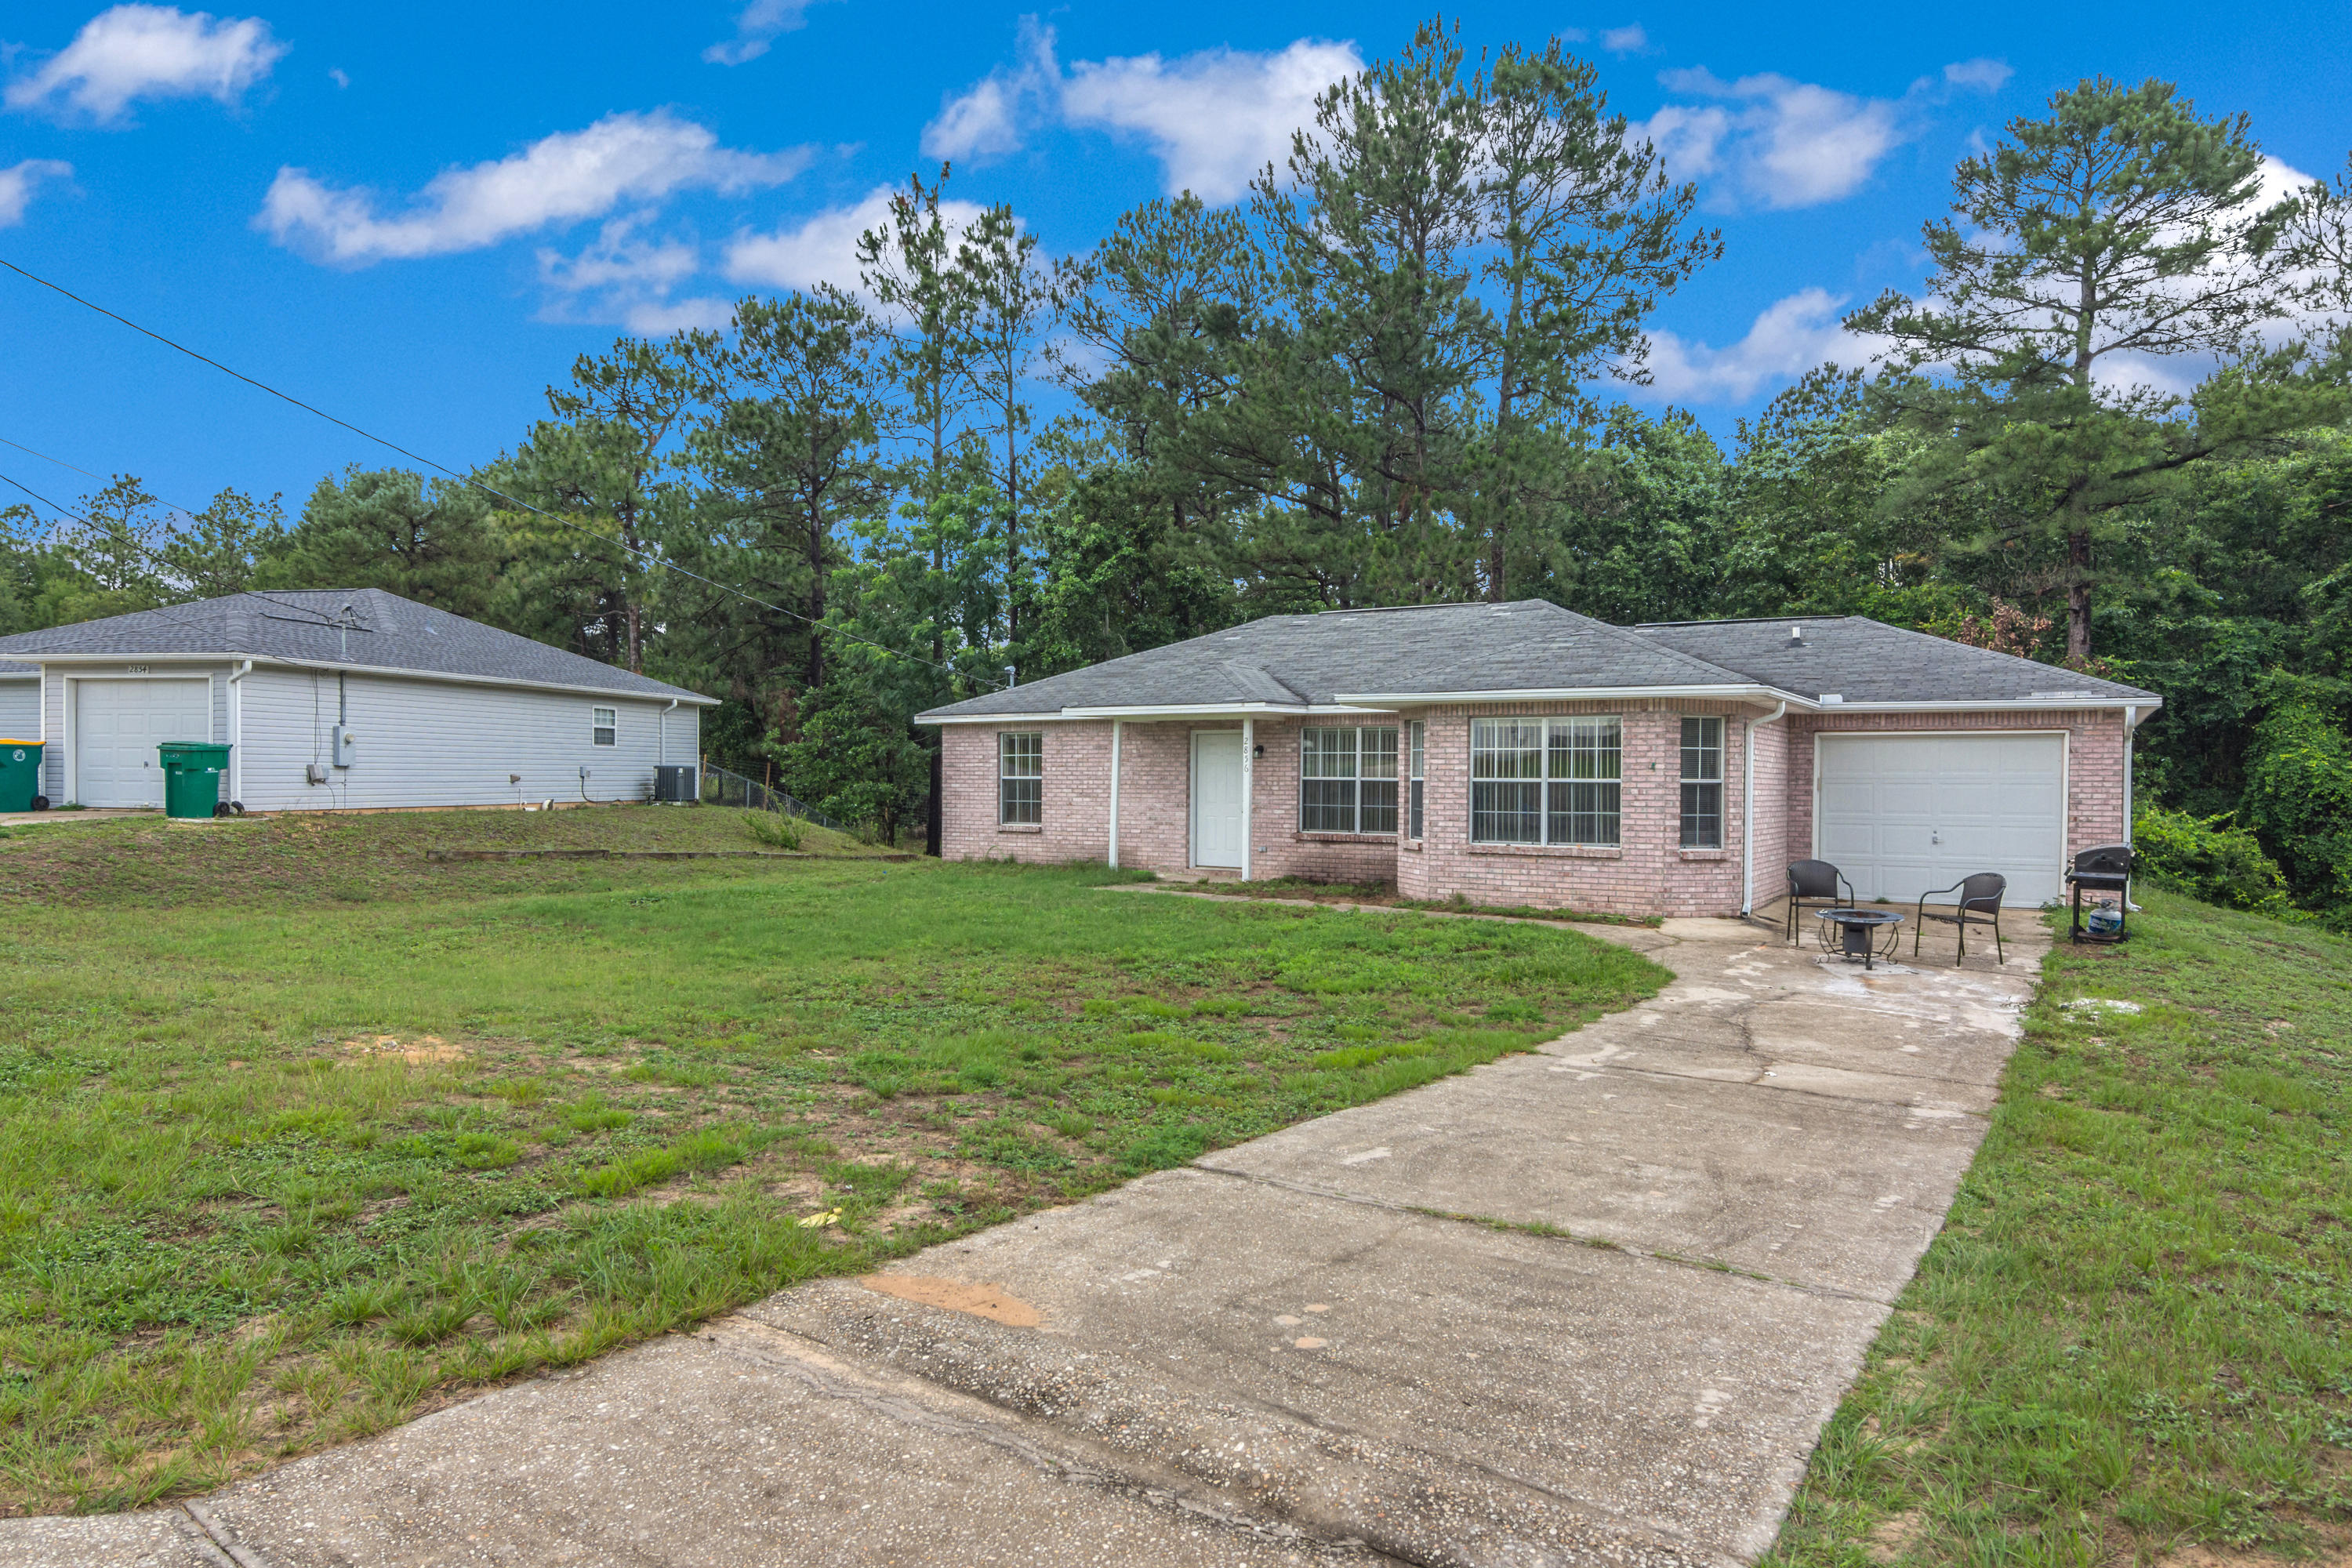 South of I-10!! Welcome home to 2856 Penney Lane! This home has 3 bedrooms, 2 bathrooms, 1 car garag